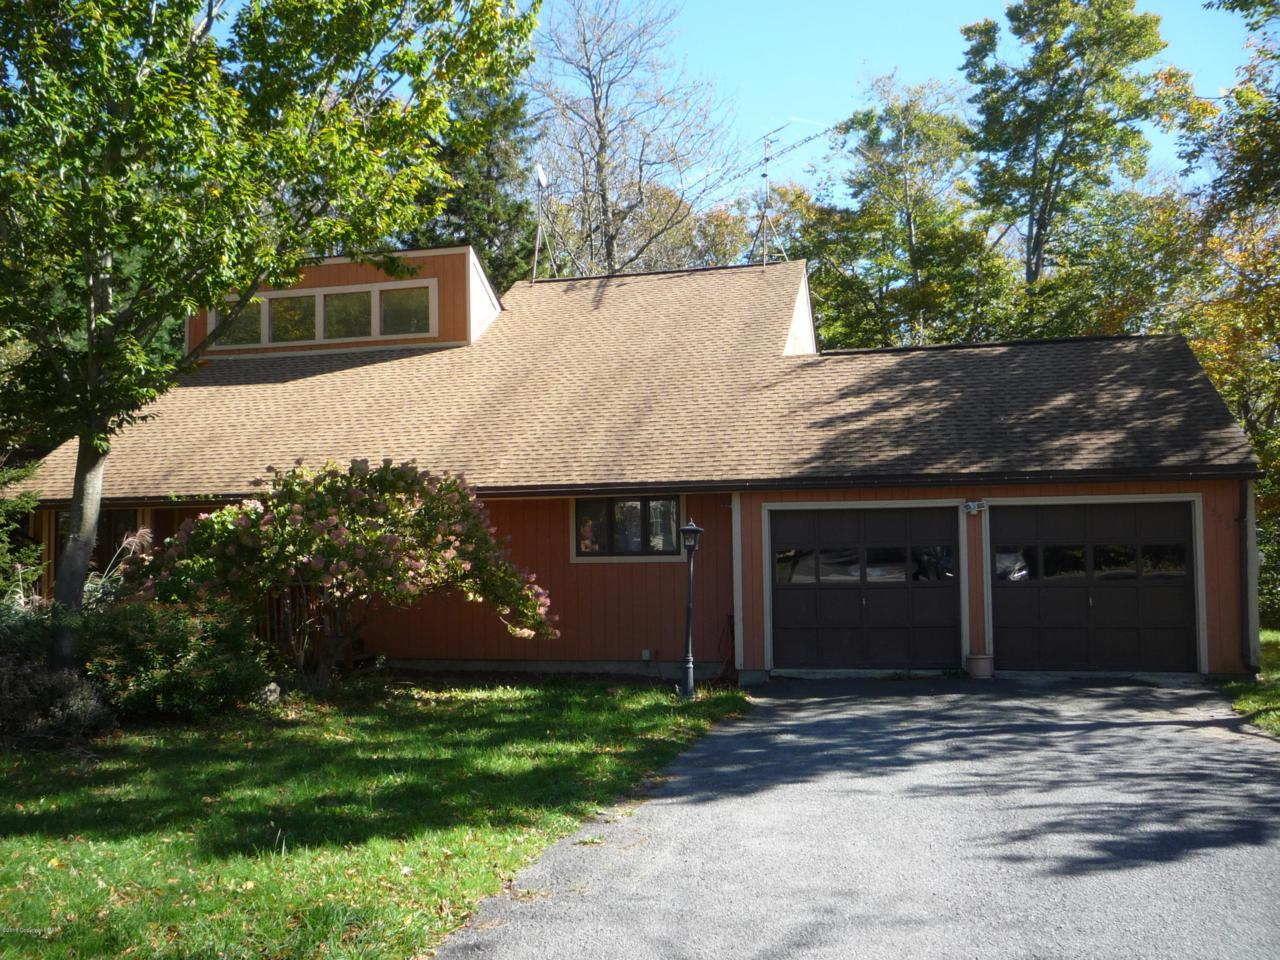 2197 Pine Valley Dr Tobyhanna Pa 18466 Mls Pm 62552